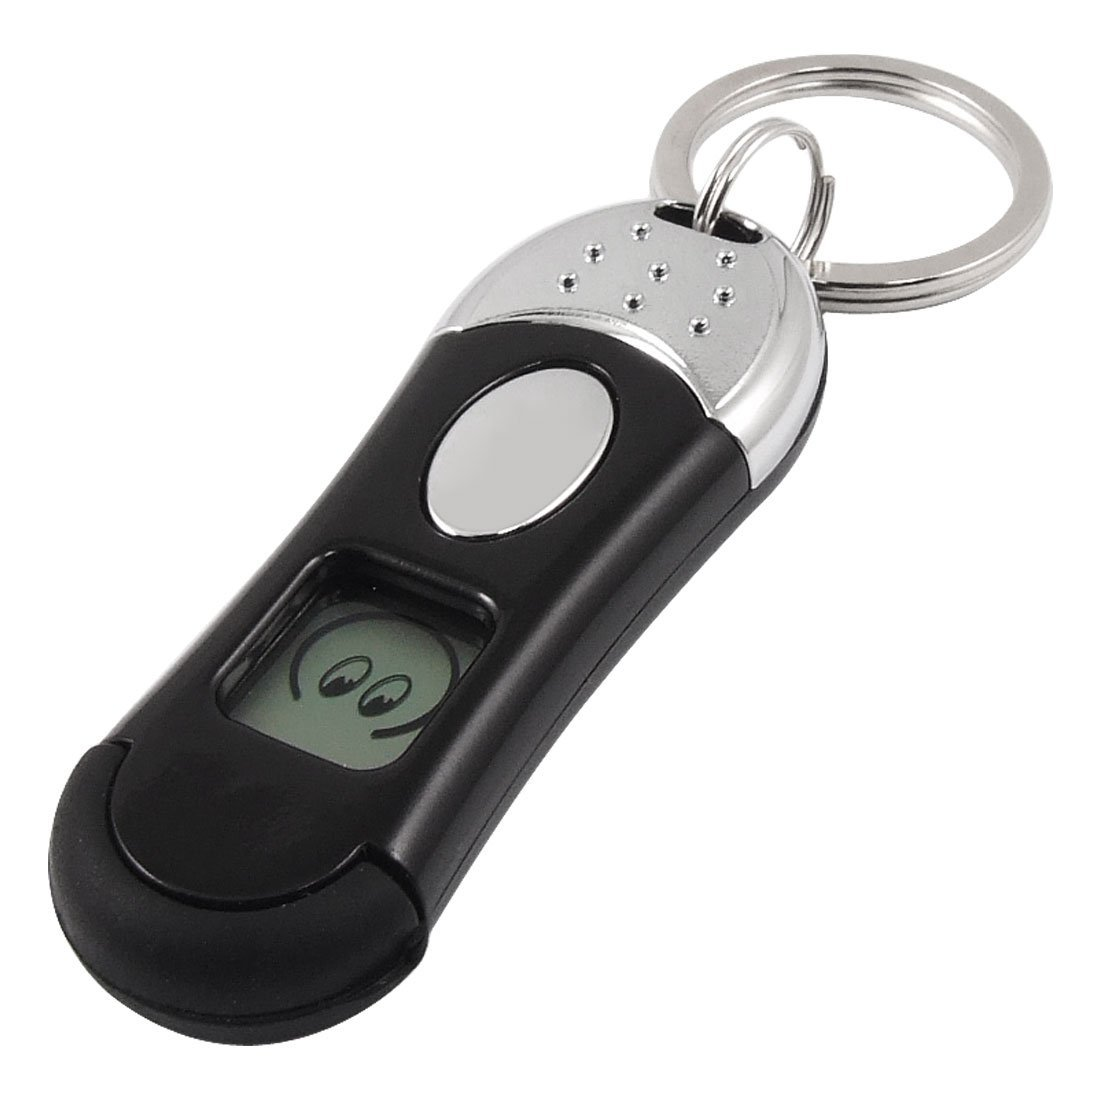 sourcingmap Contact Button Anti-Static Elimination Discharger Keyring Black